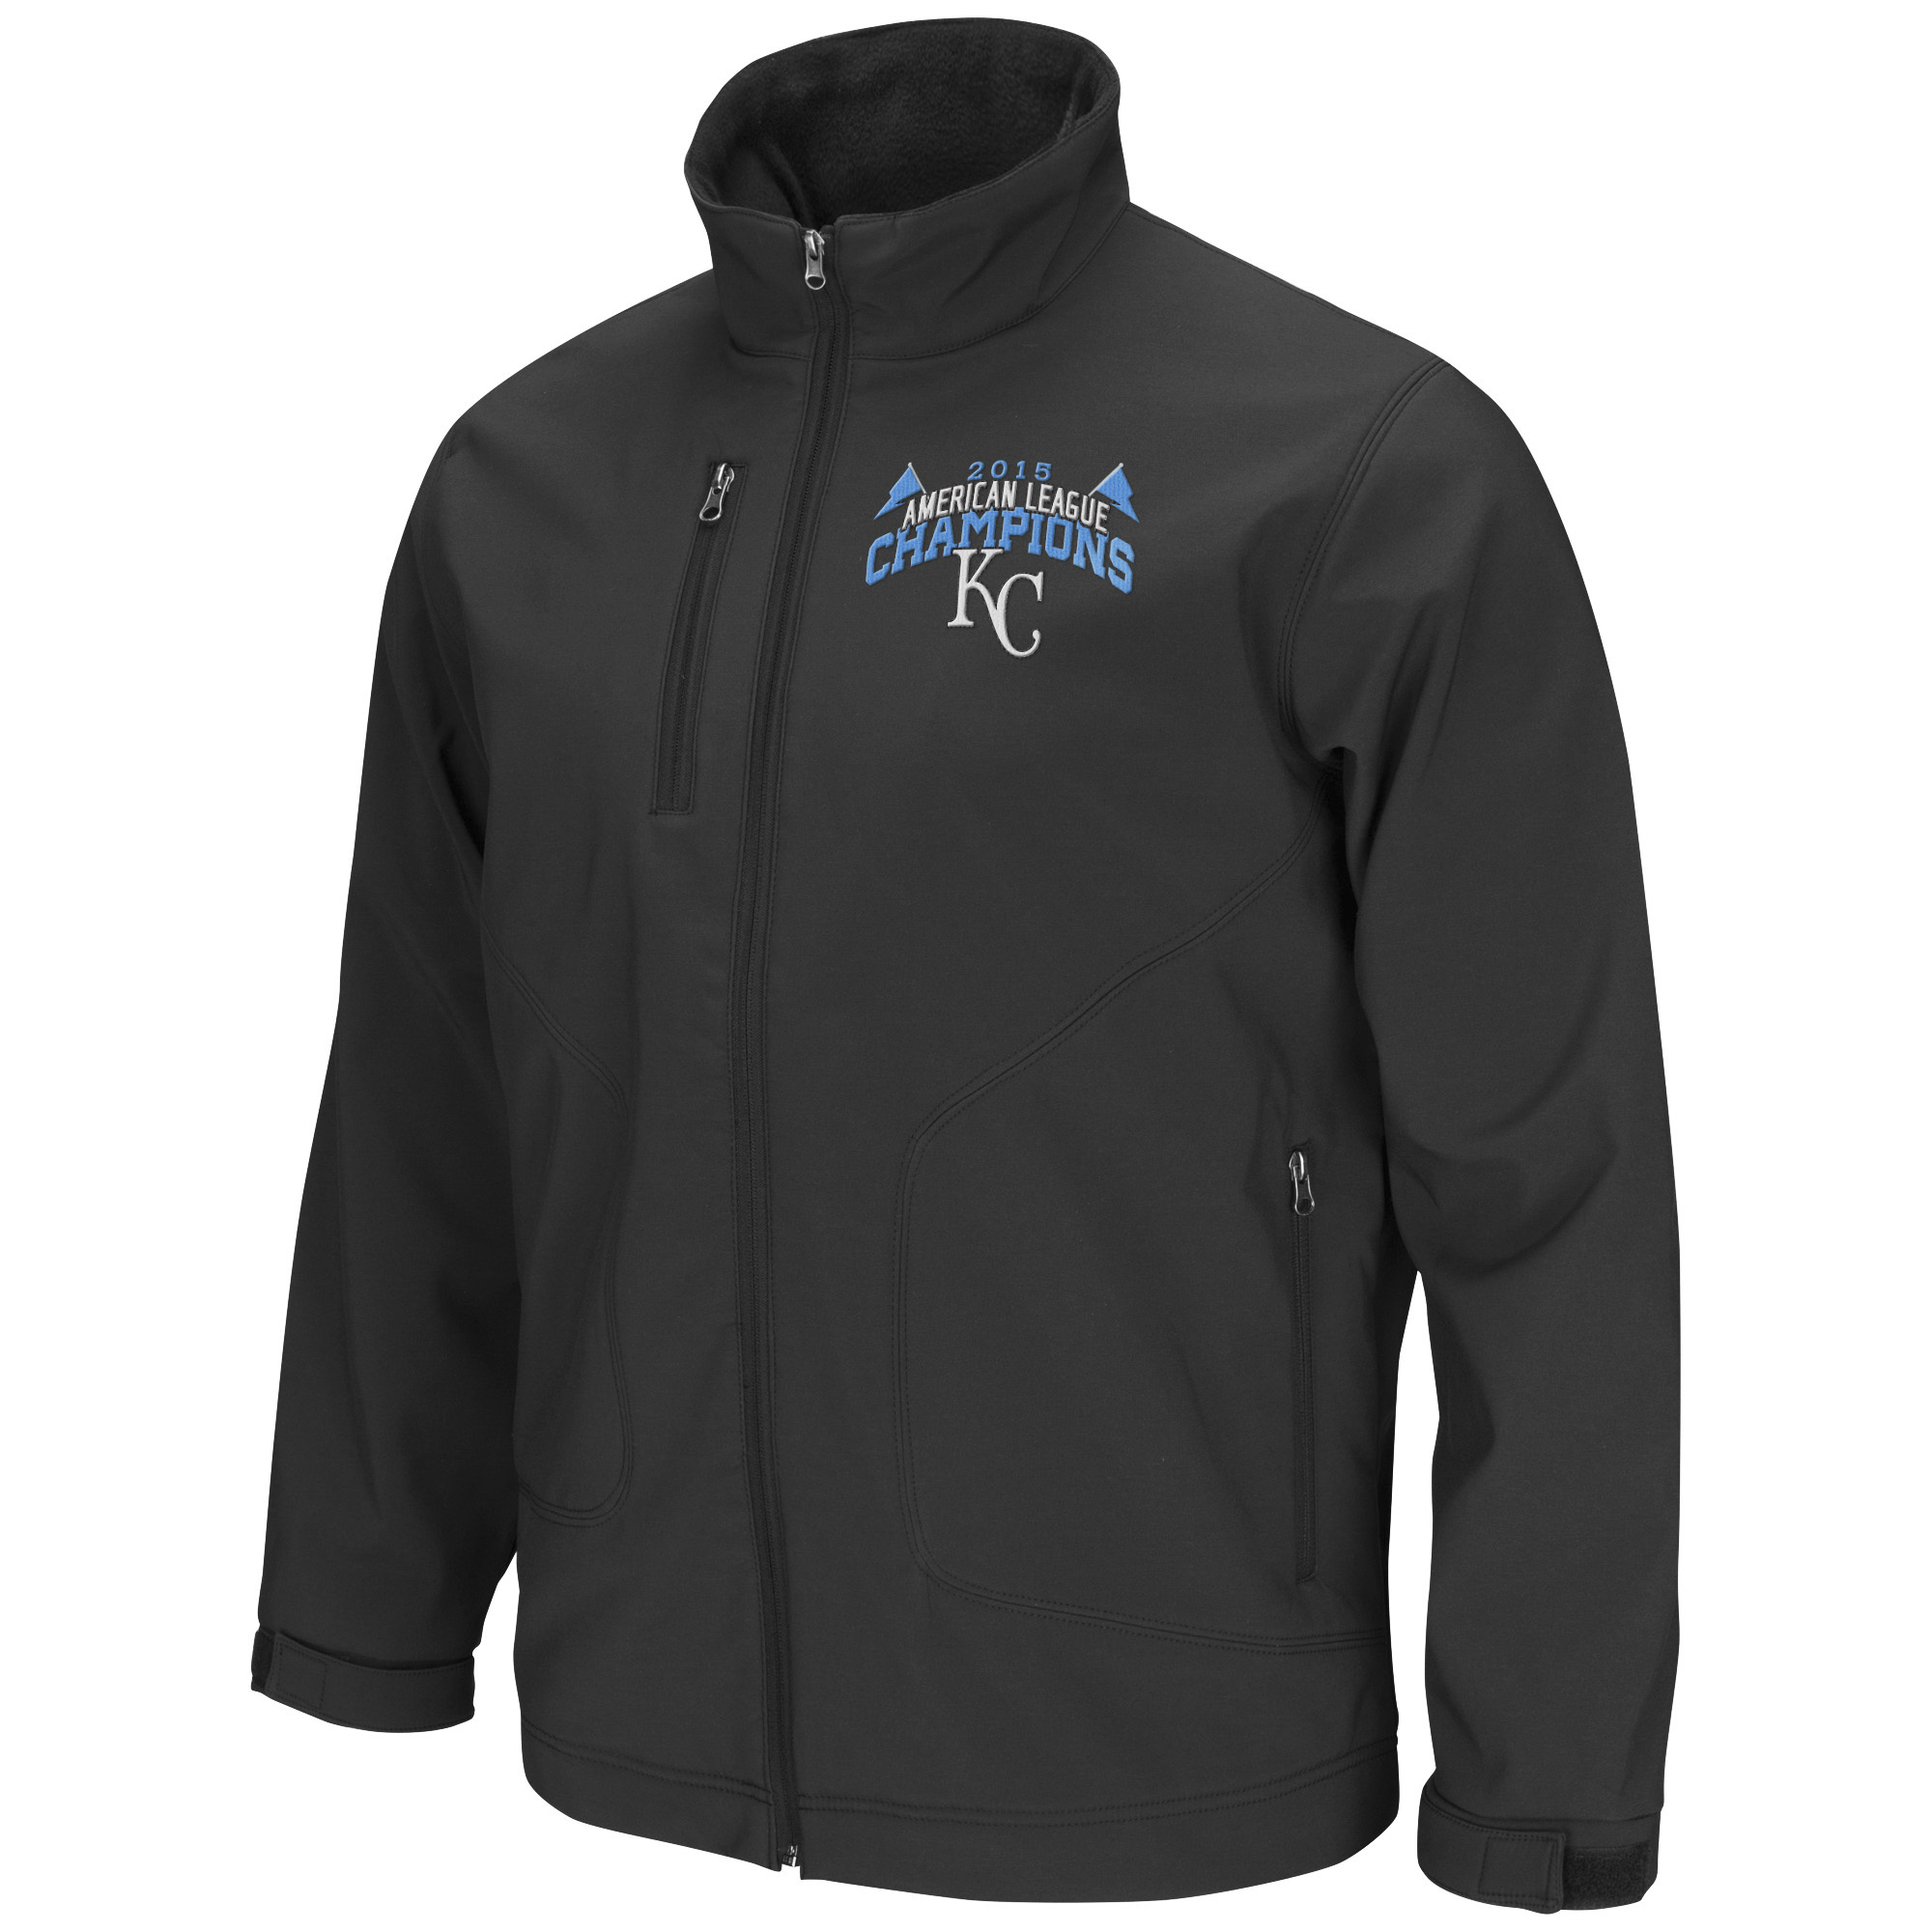 Kansas City Royals G-III Sports by Carl Banks 2015 American League Champions Soft Shell Jacket Black by G-III LEATHER FASHIONS INC